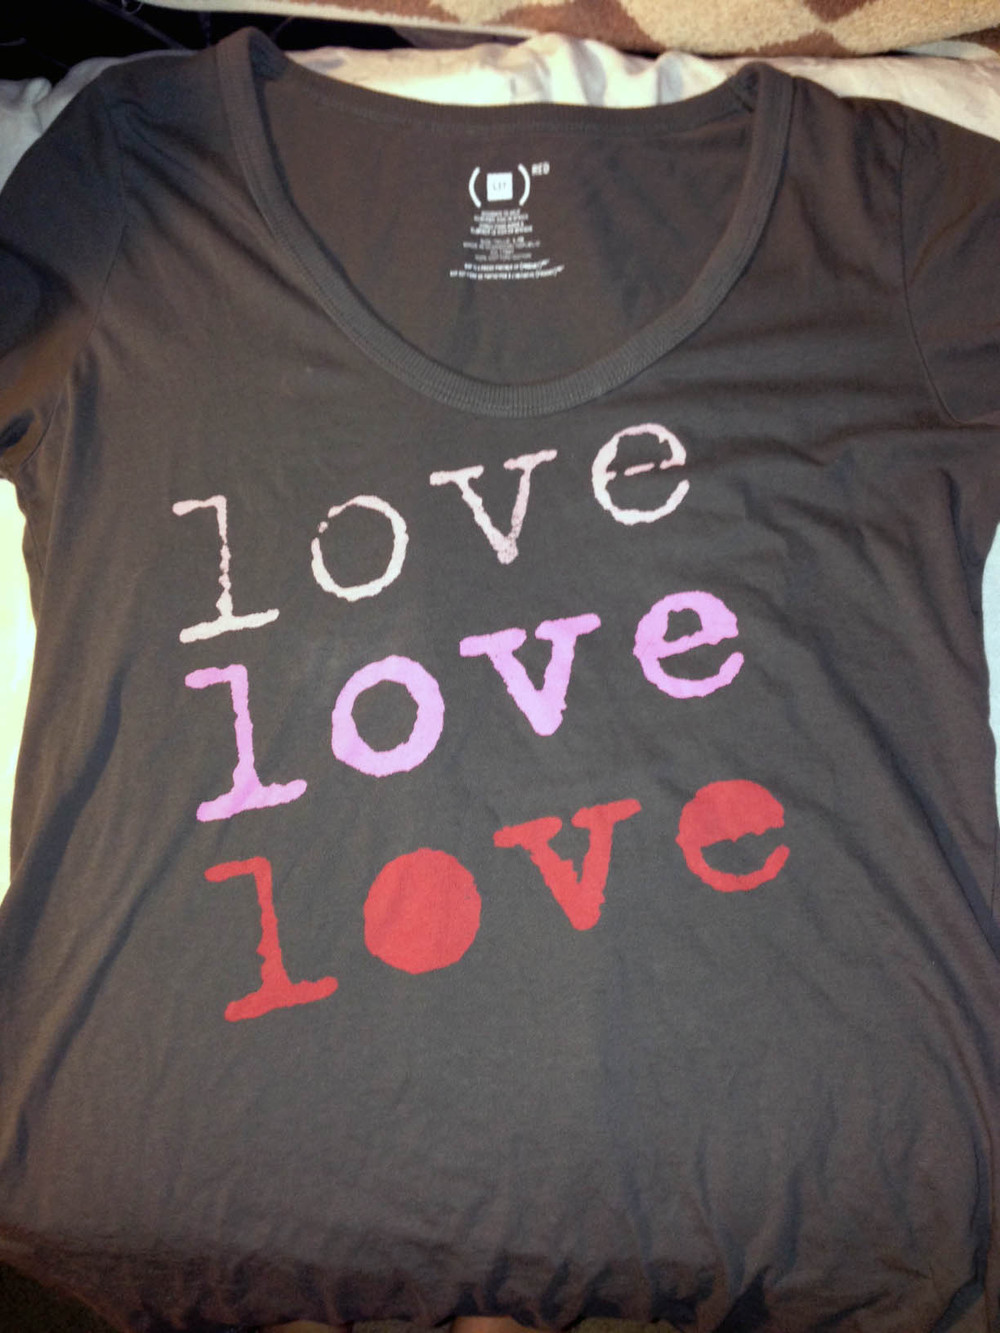 love shirt.jpeg